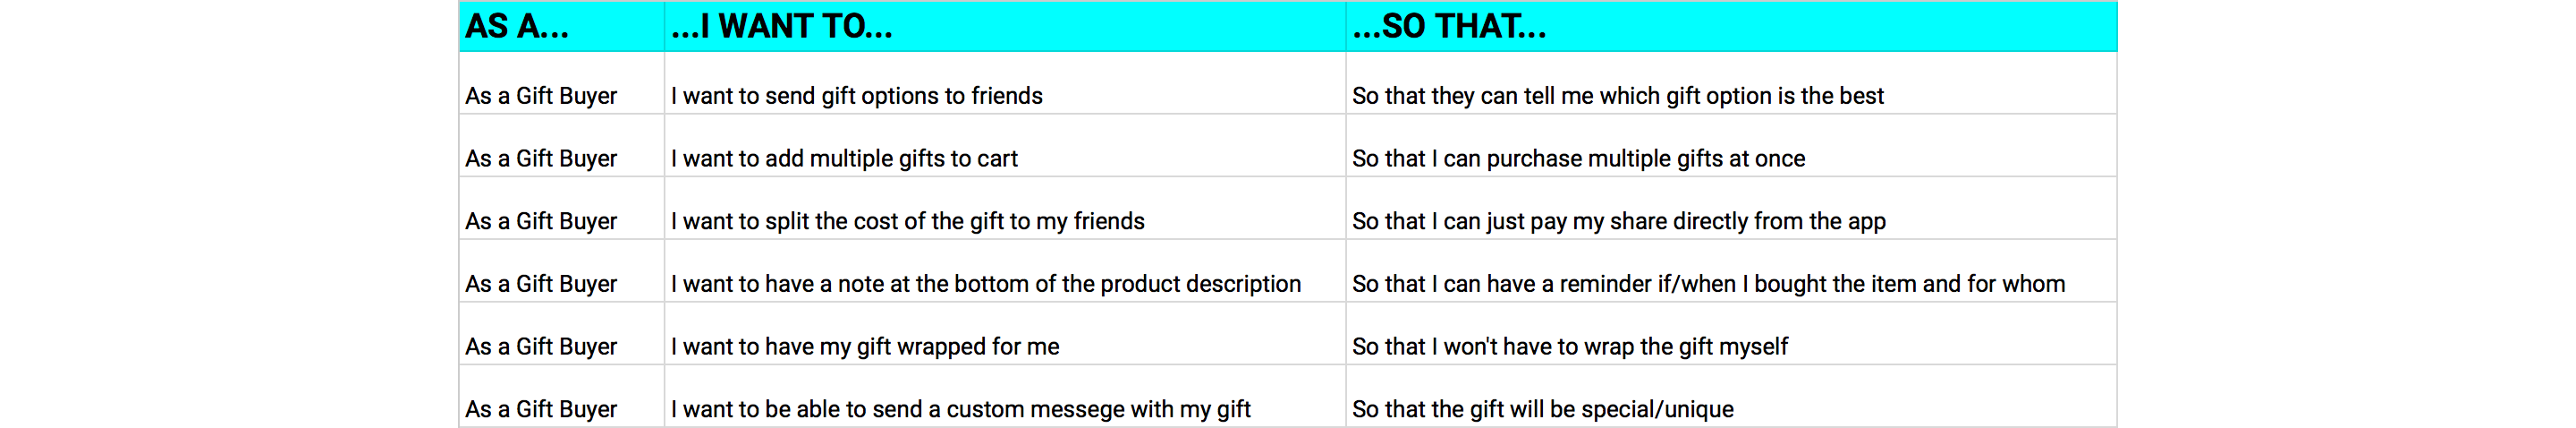 user-story-product-selection